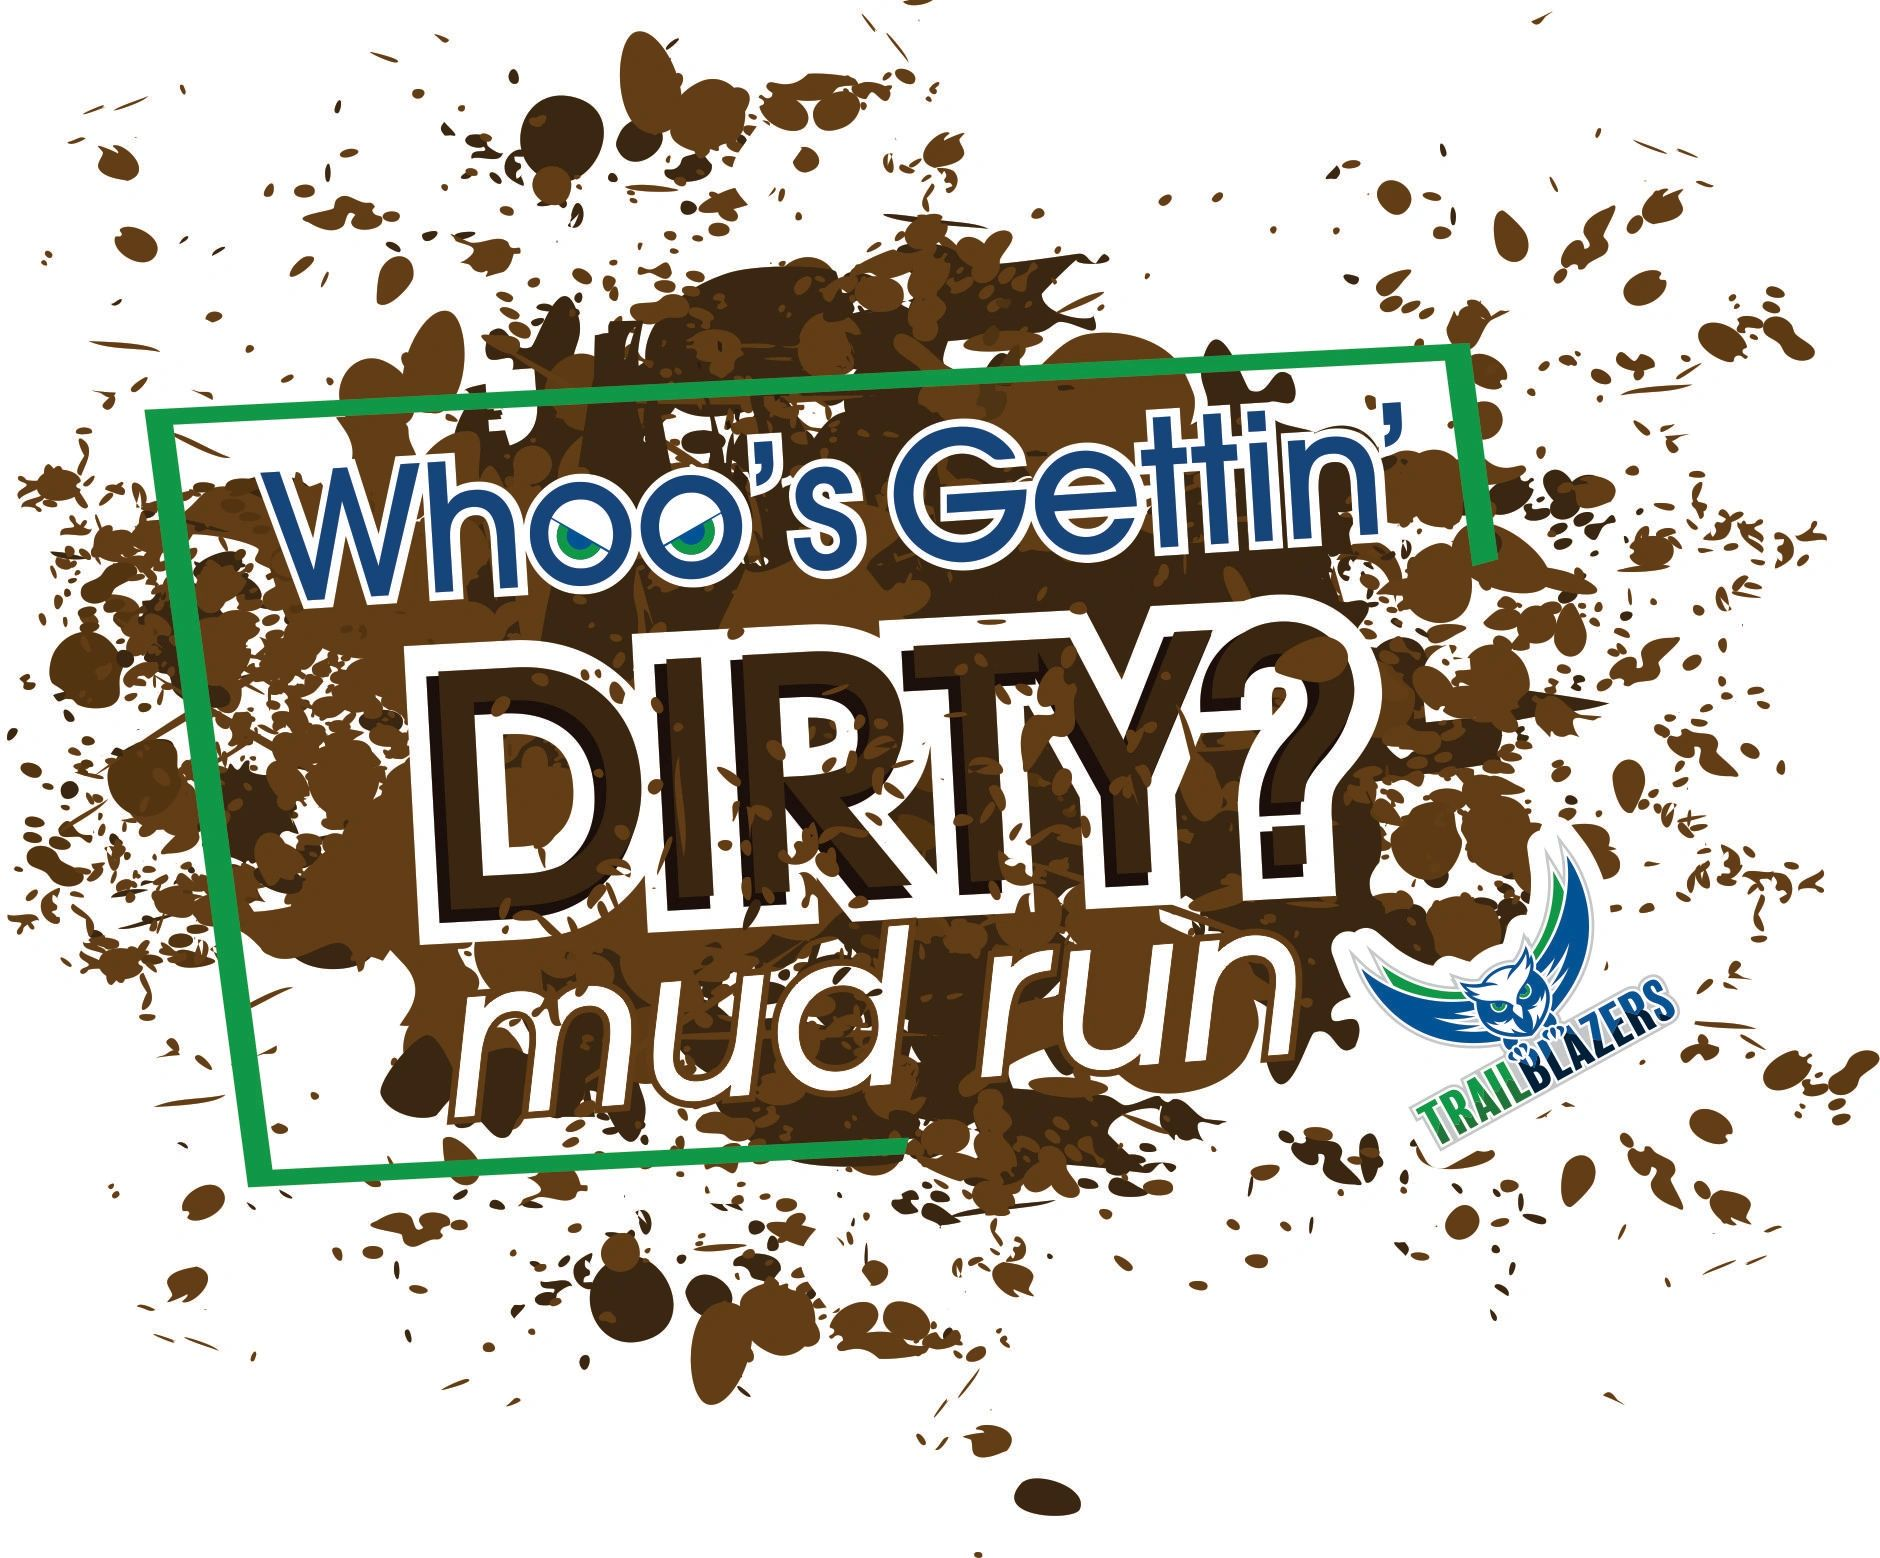 Whoos Gettin Dirty